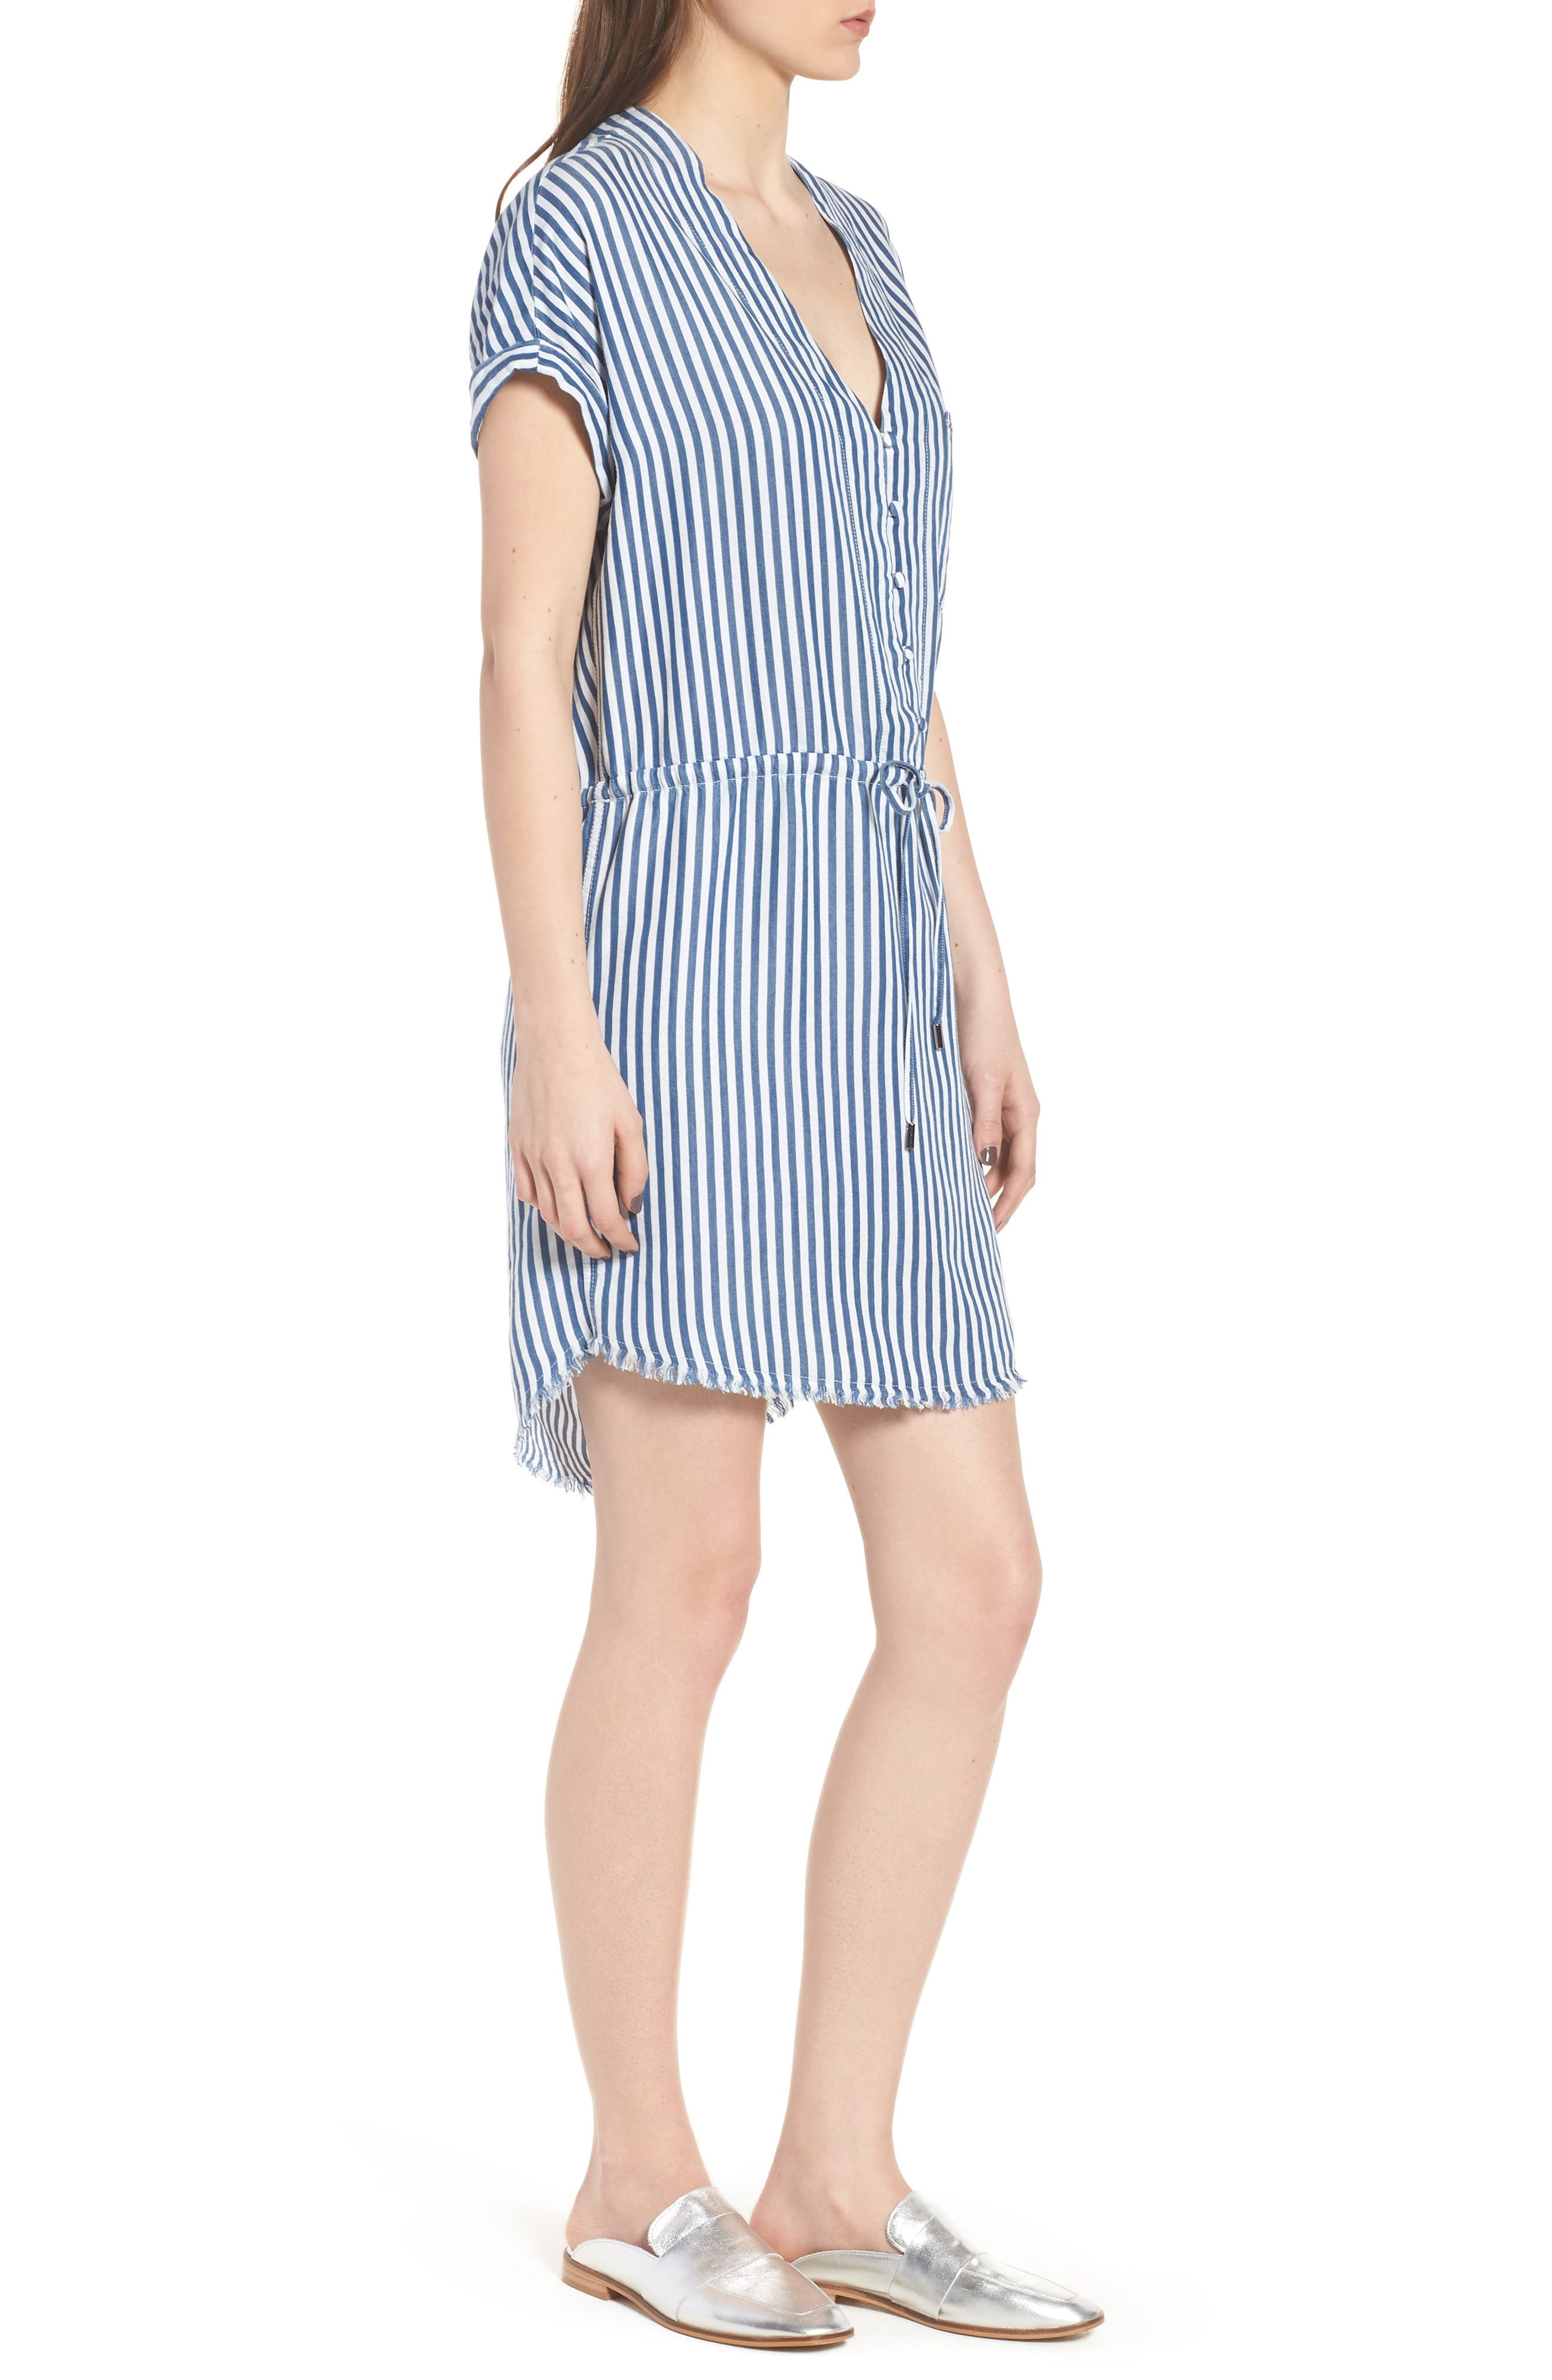 Haidee Stripe Shift Dress,                             Alternate thumbnail 3, color,                             White/ Blue Bell Stripe